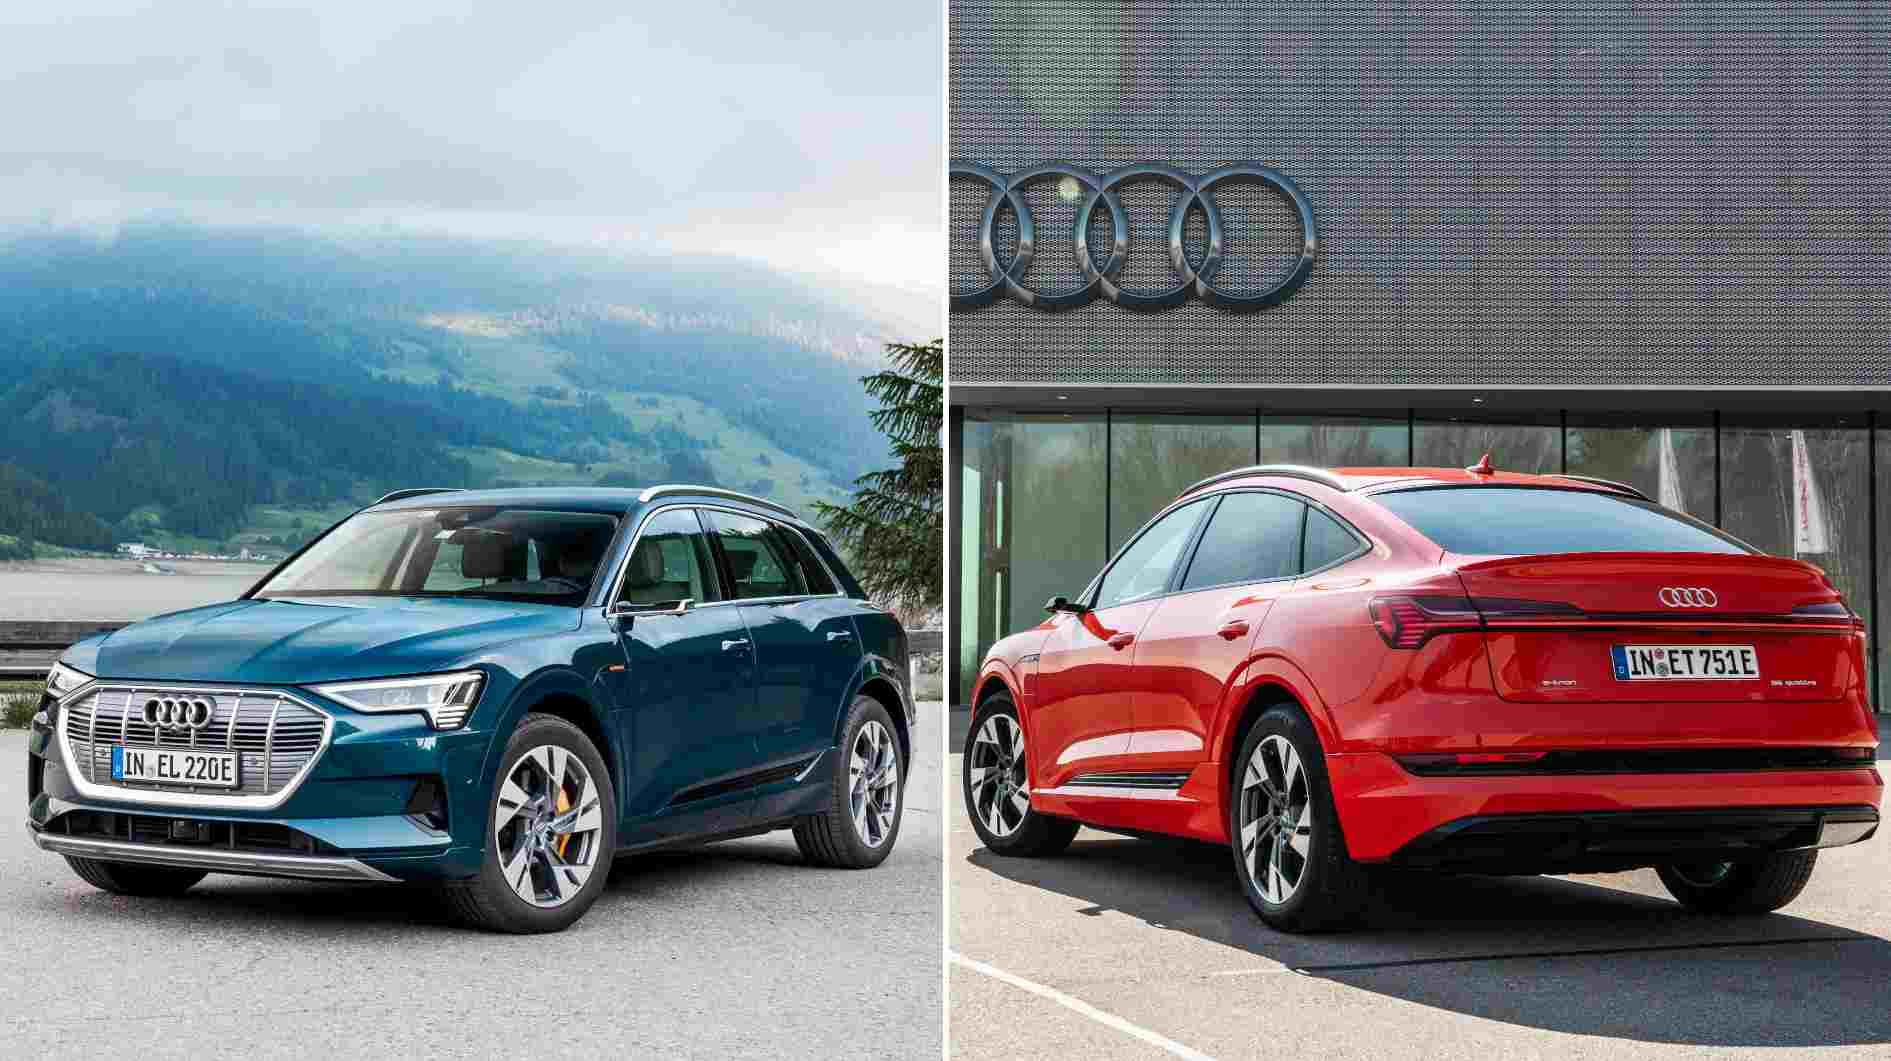 Both the standard as well as the coupe-SUV versions of the Audi e-tron will be offered in India. Image: Audi